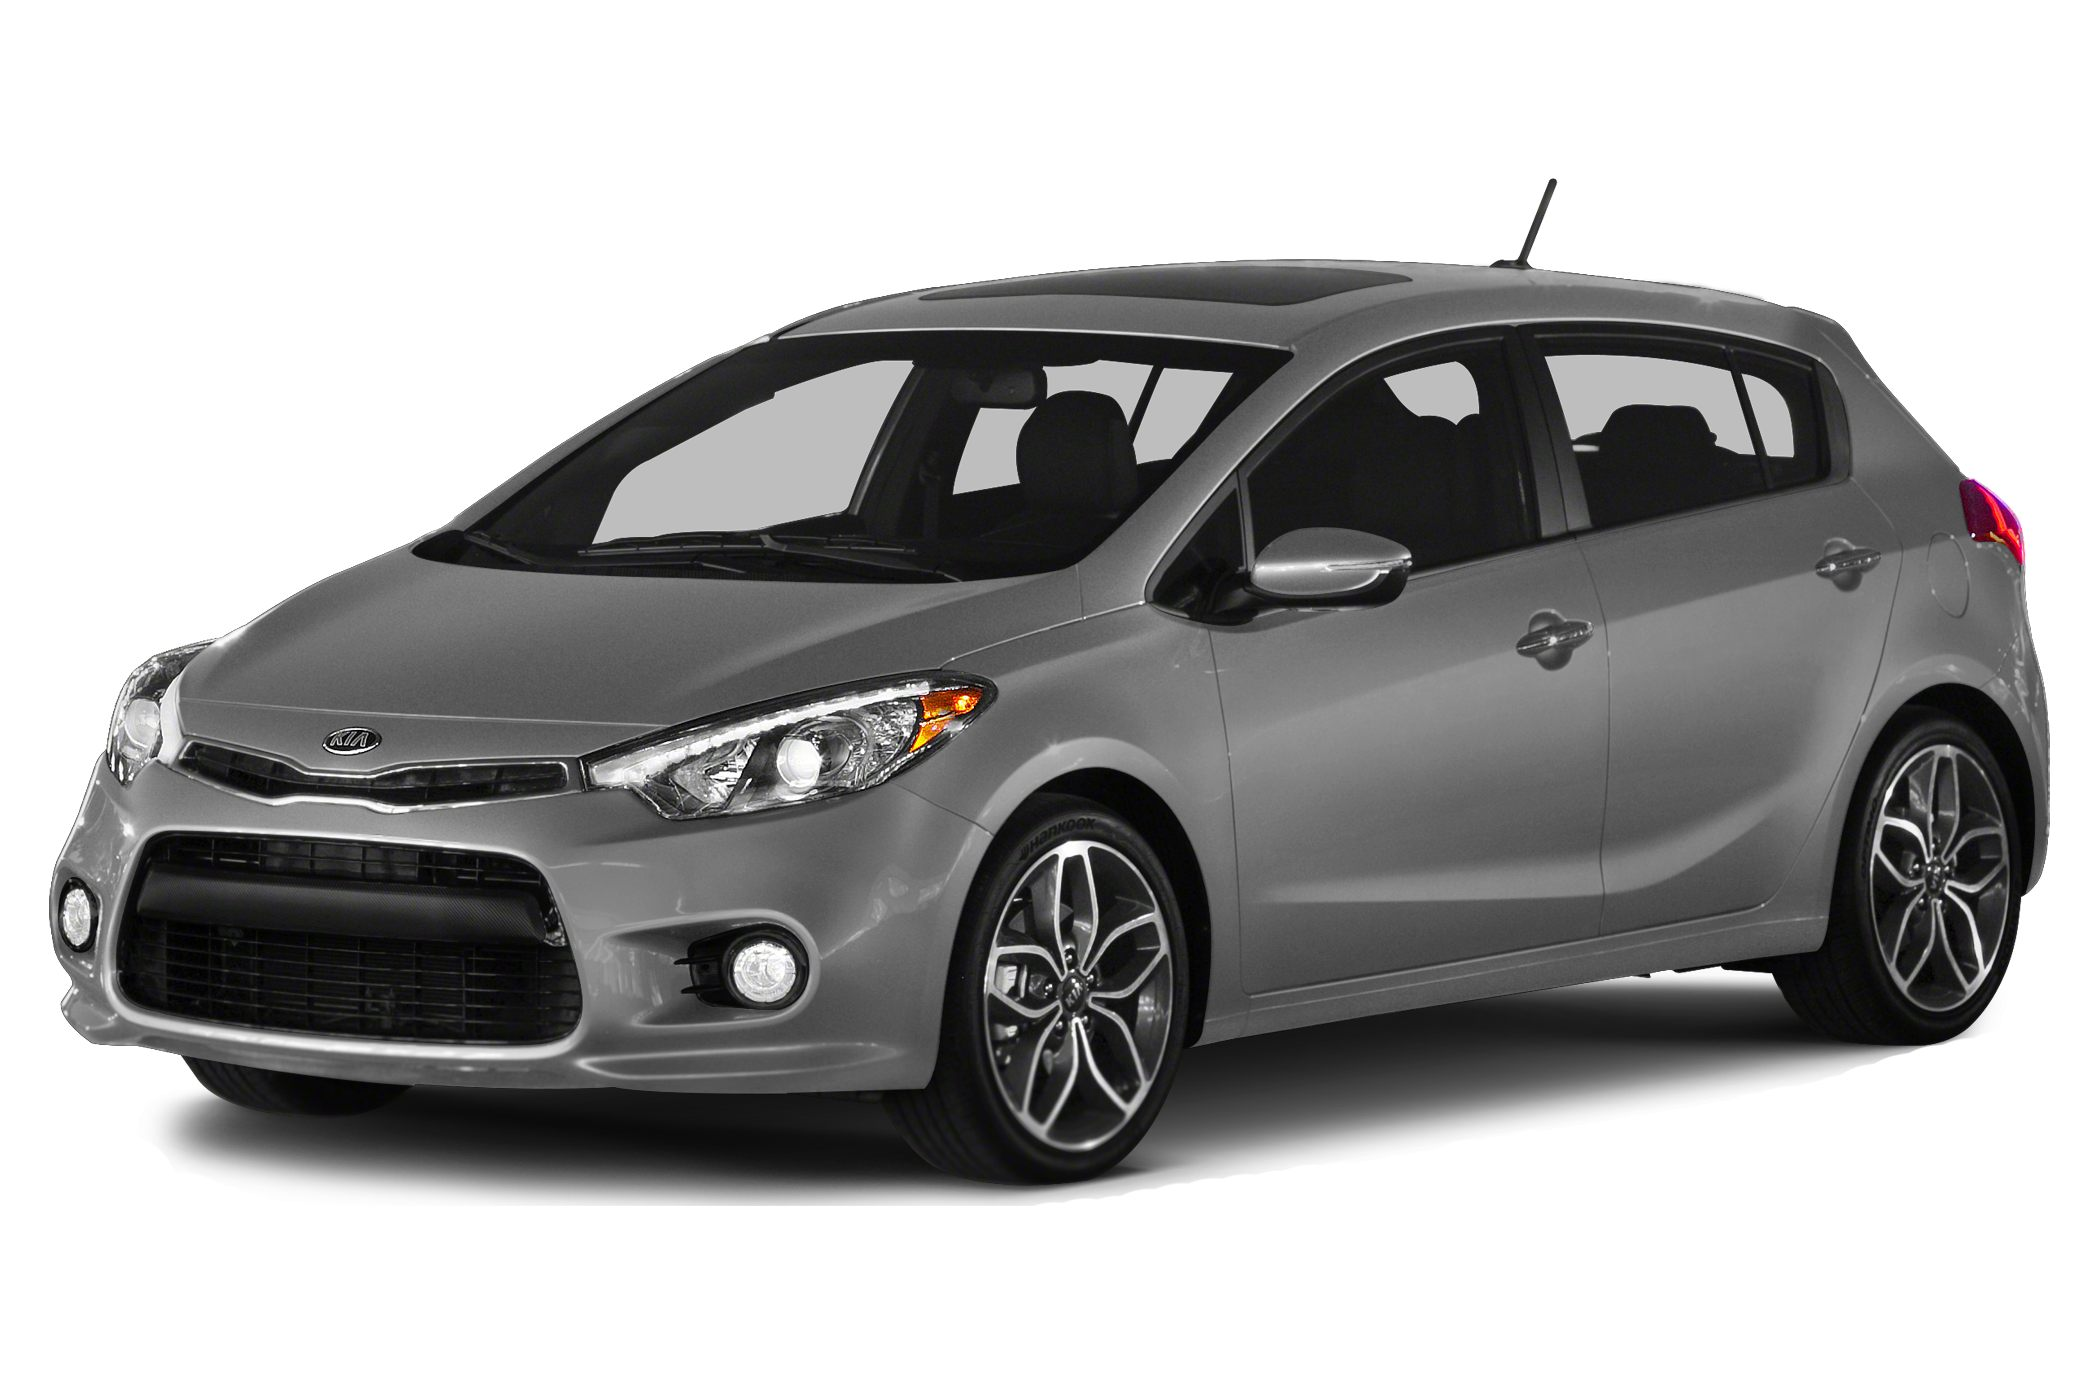 2012 kia forte hatchback pictures information and specs auto. Black Bedroom Furniture Sets. Home Design Ideas